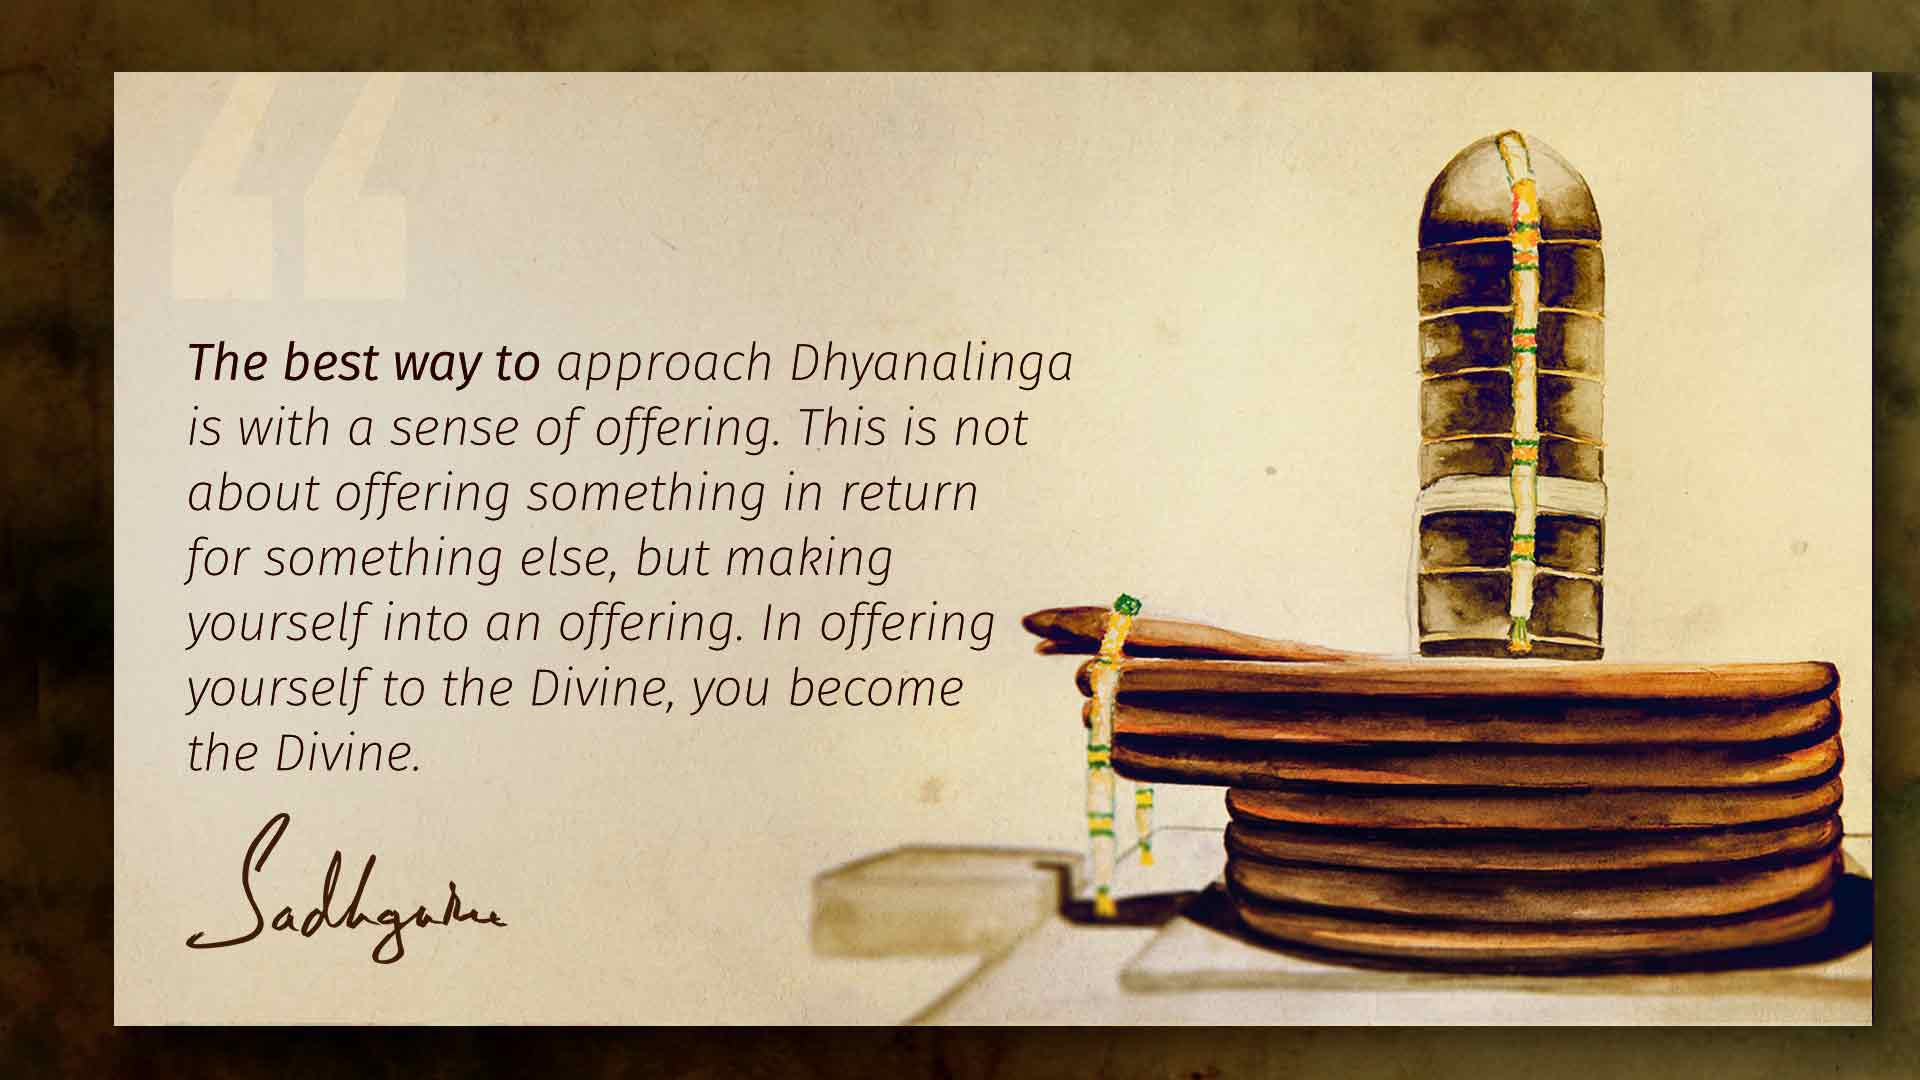 Sadhguru Quotes on Dhyanalinga